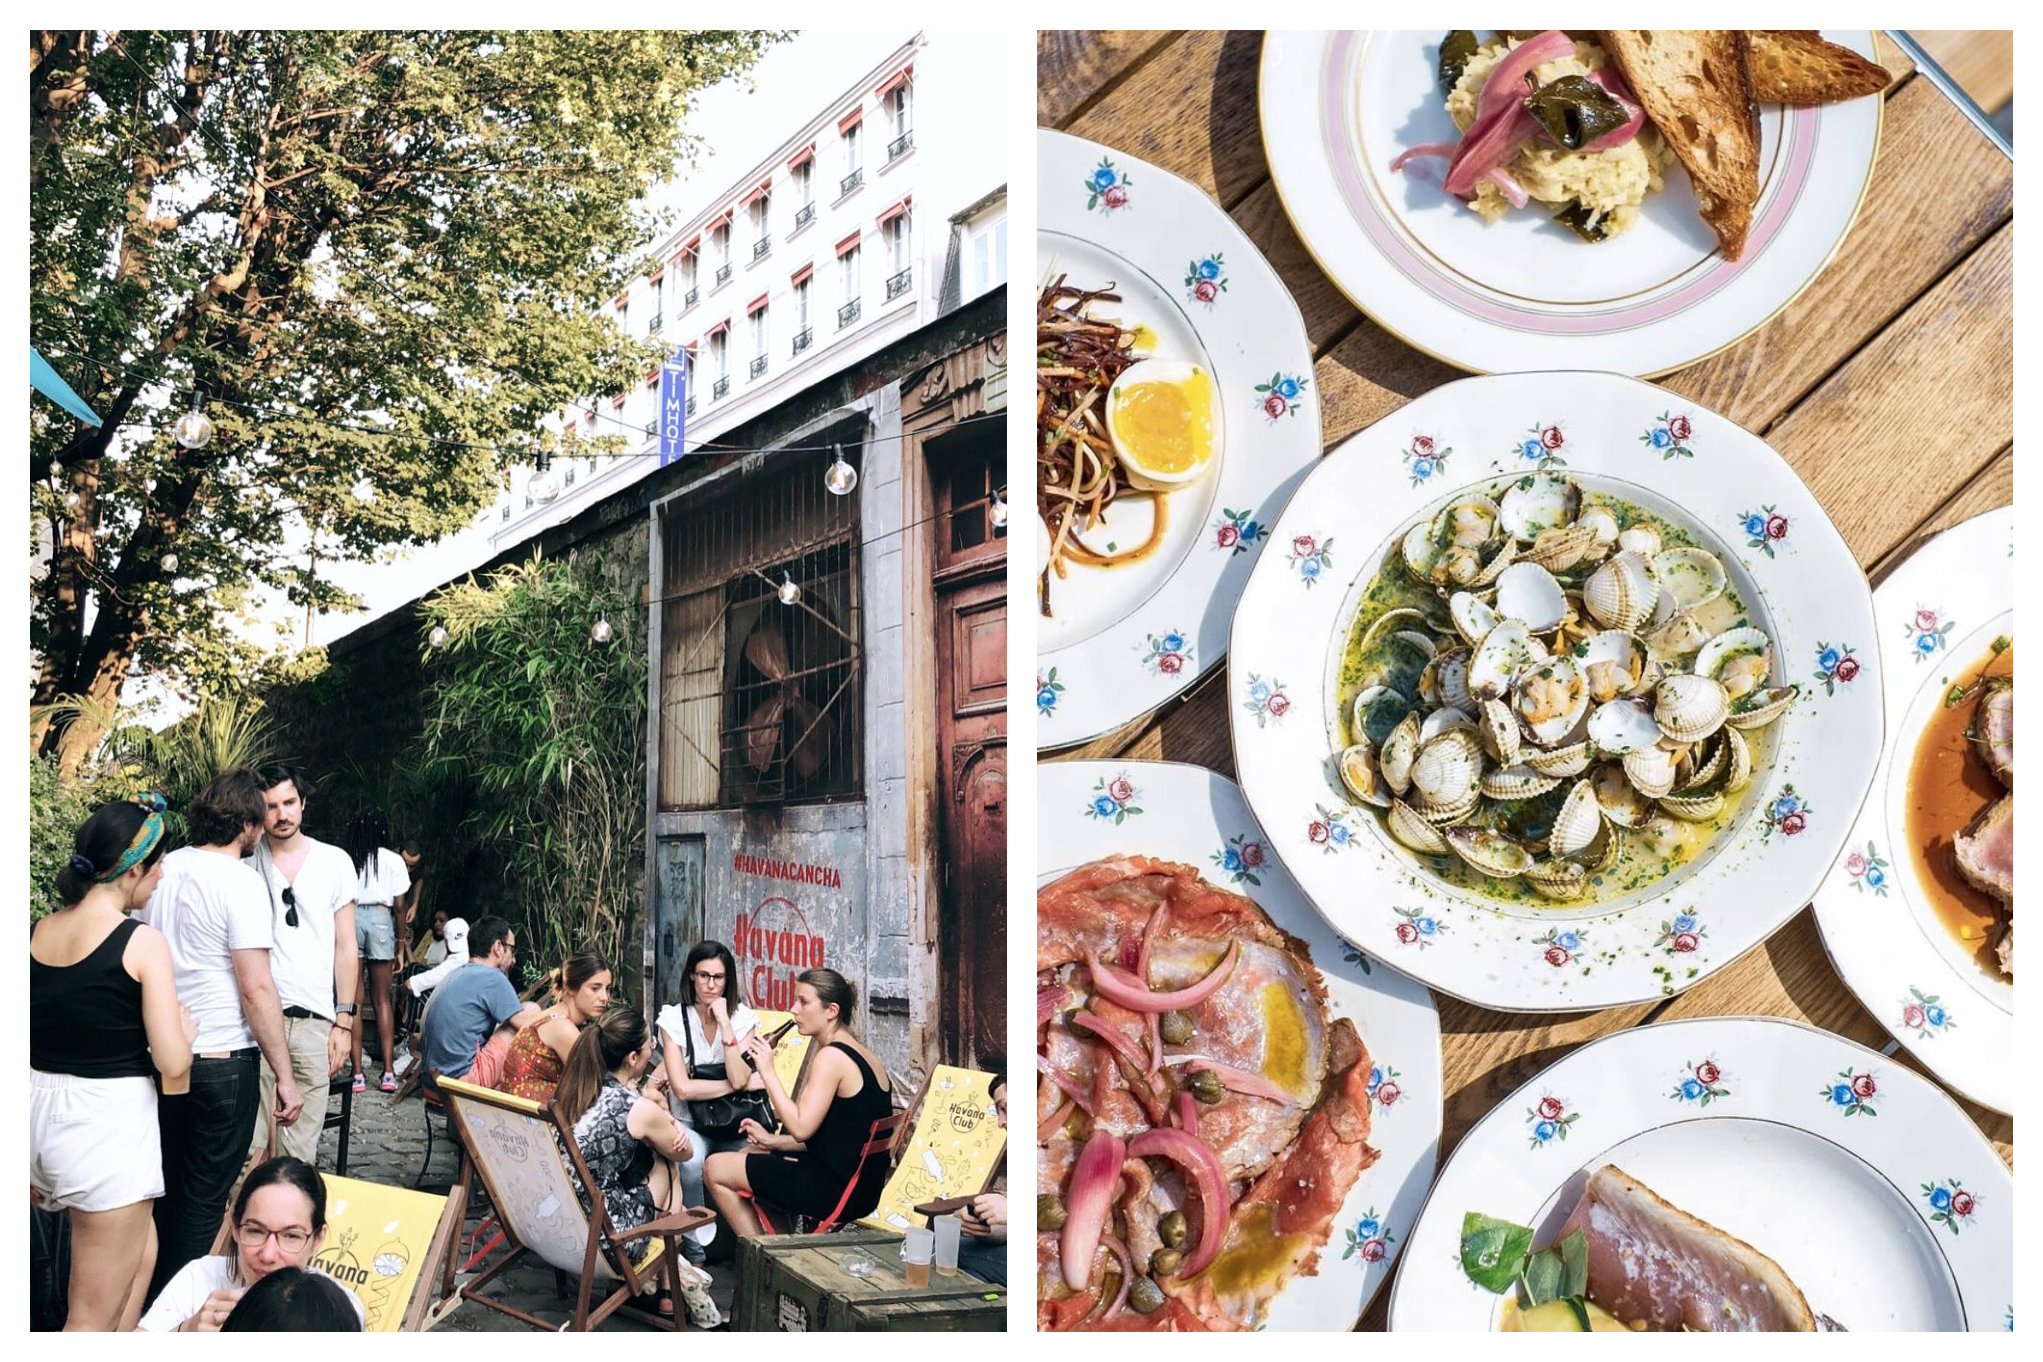 Left: Parisian friends are enjoying their quiet moment in a hidden terrace in Paris called Café A. Right: A plate of different seafood meals you can order from Maison Maison.